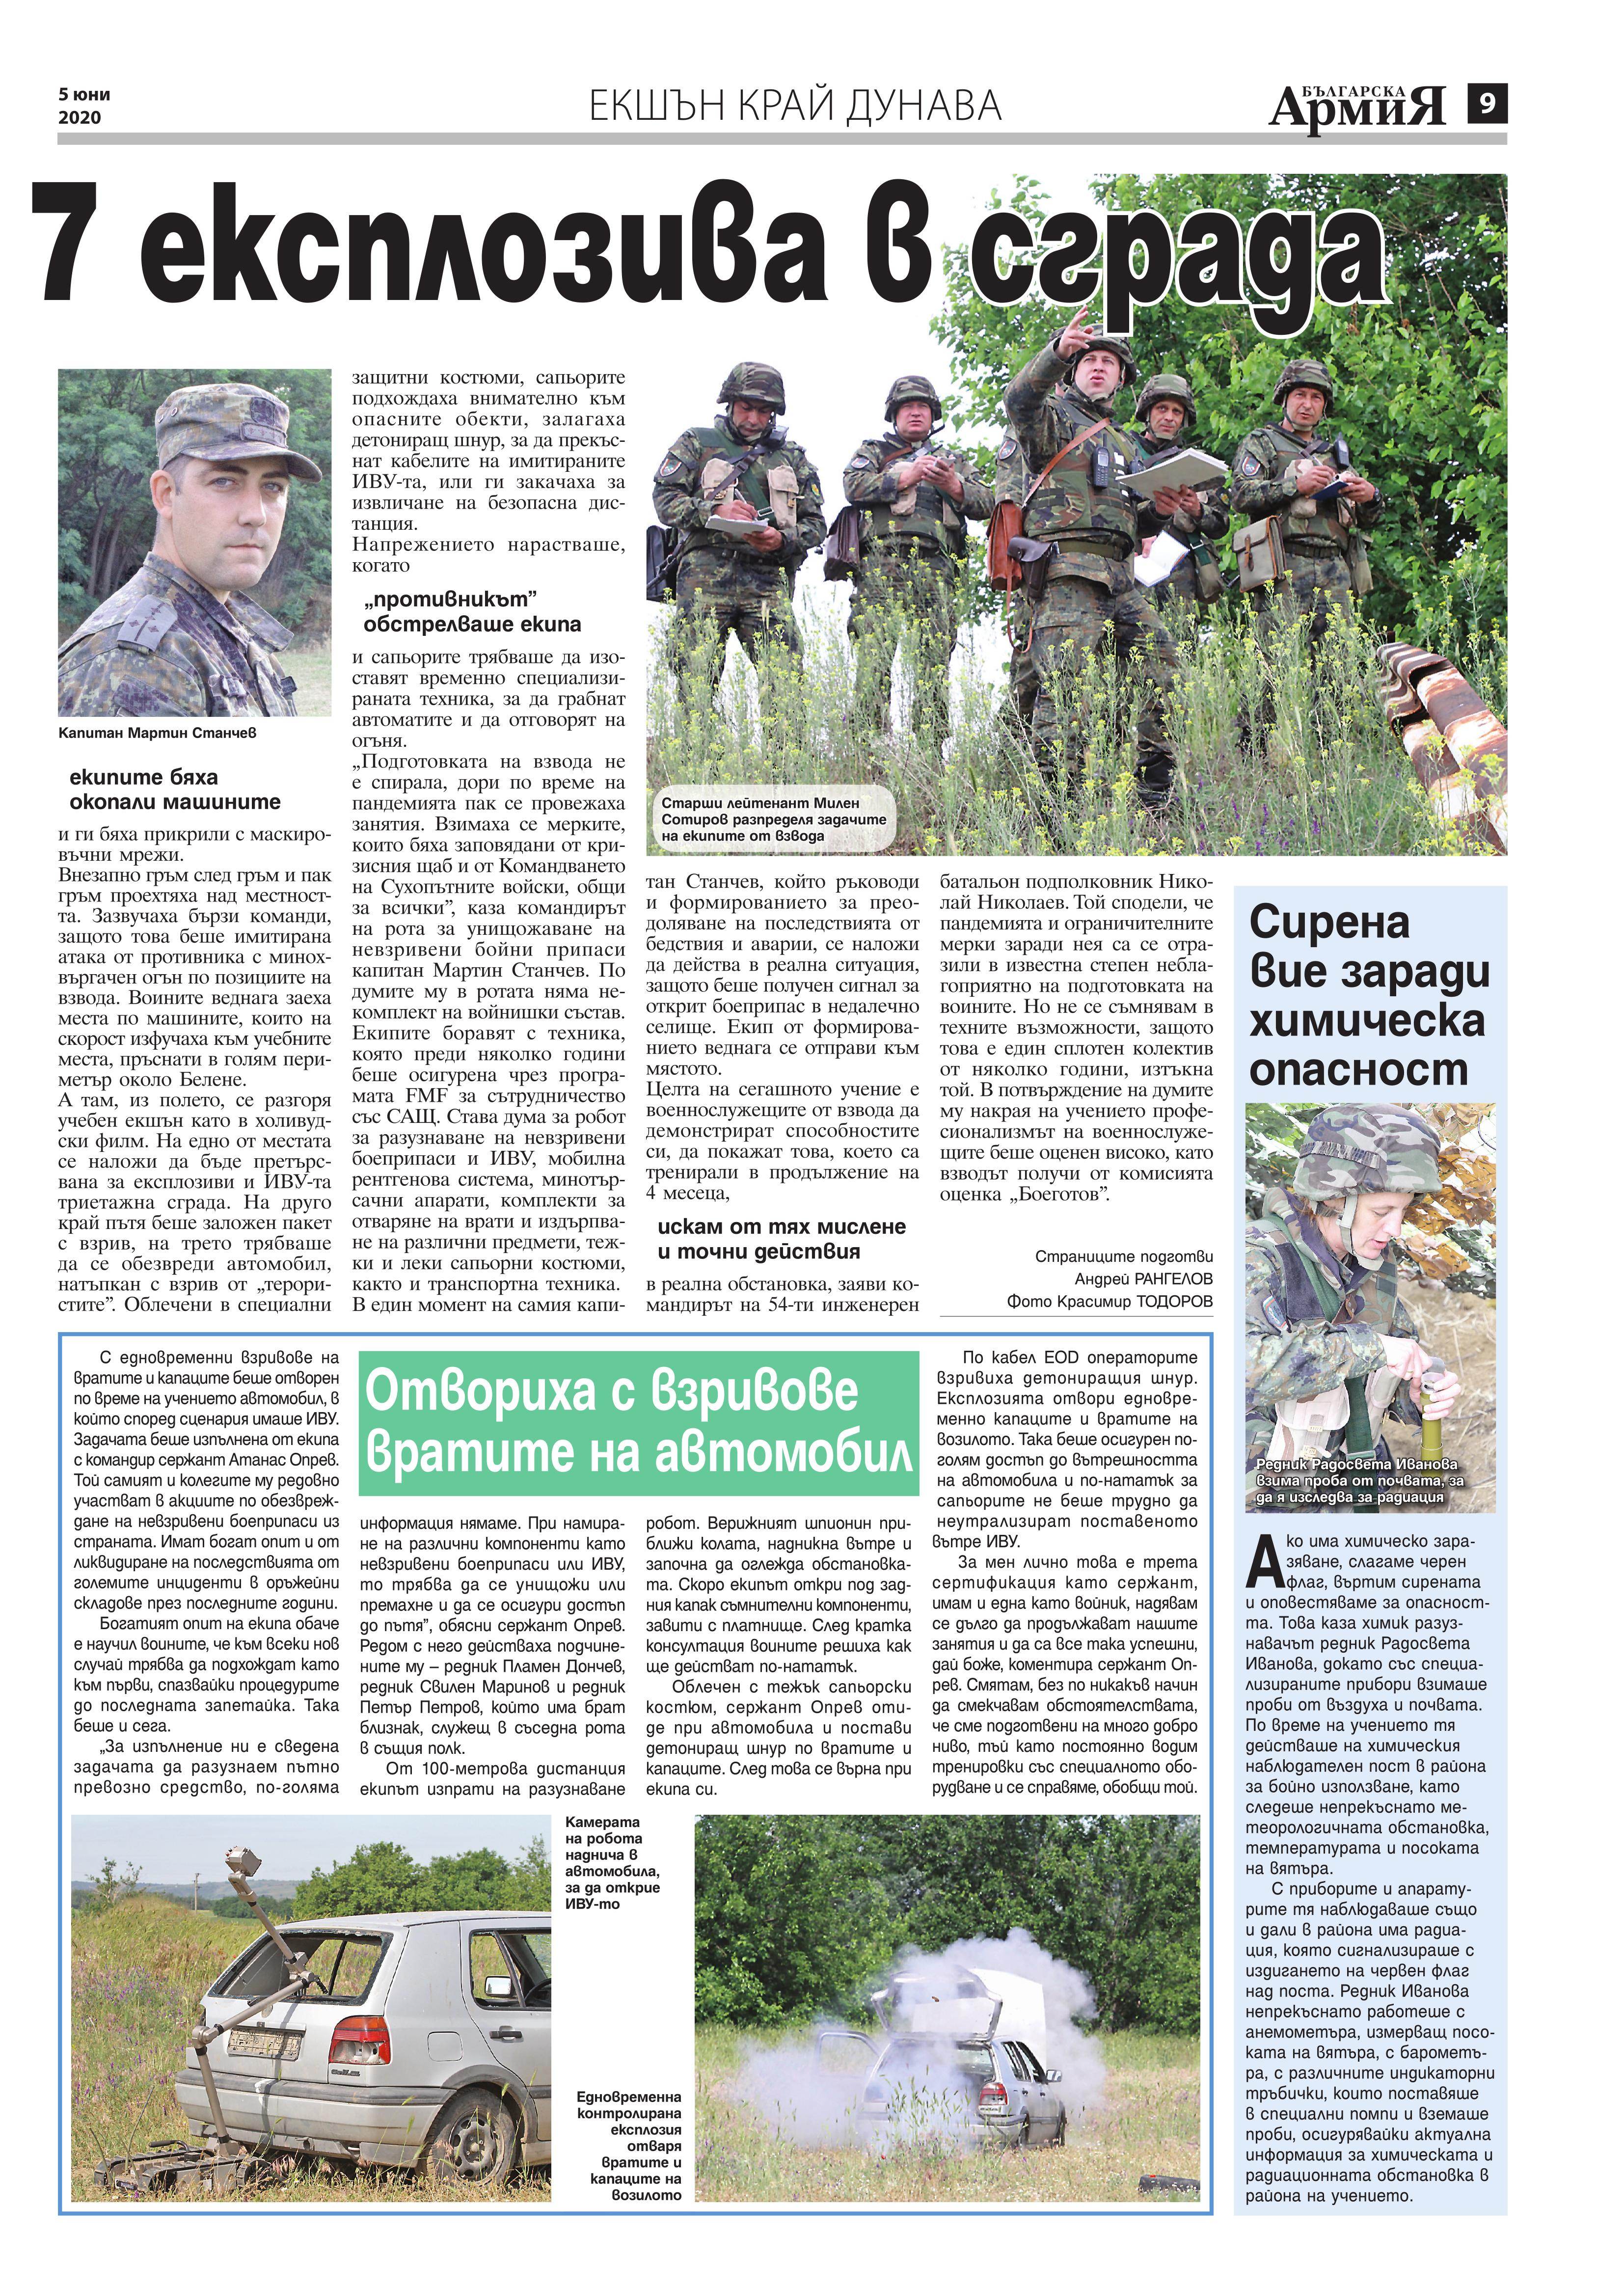 https://armymedia.bg/wp-content/uploads/2015/06/09.page1_-140.jpg